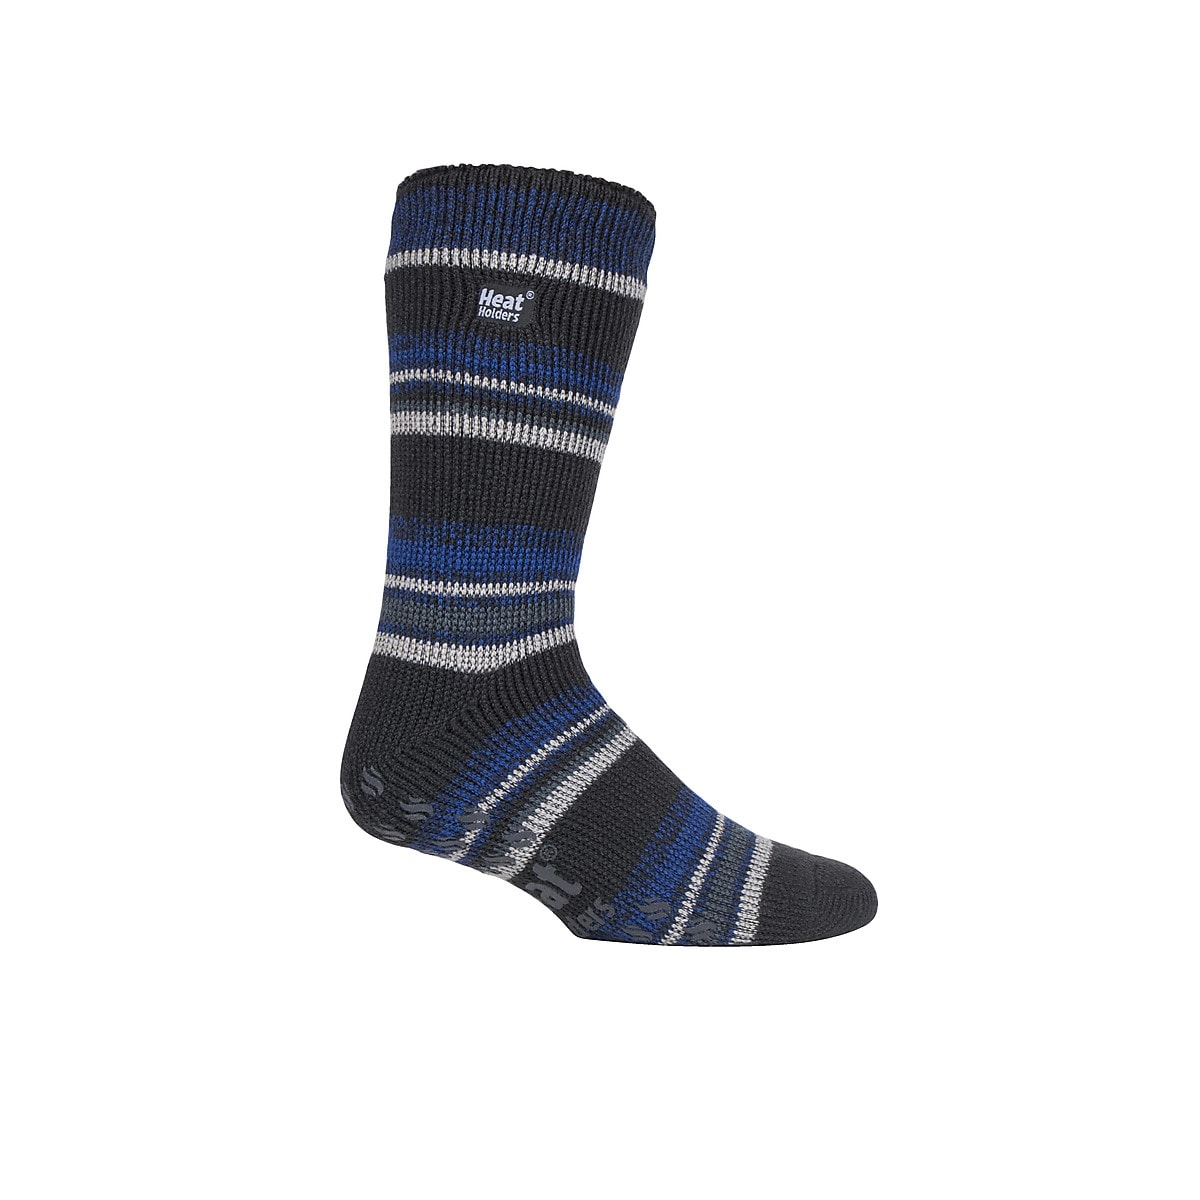 Heat Holders Thermal Socks, size 39-45